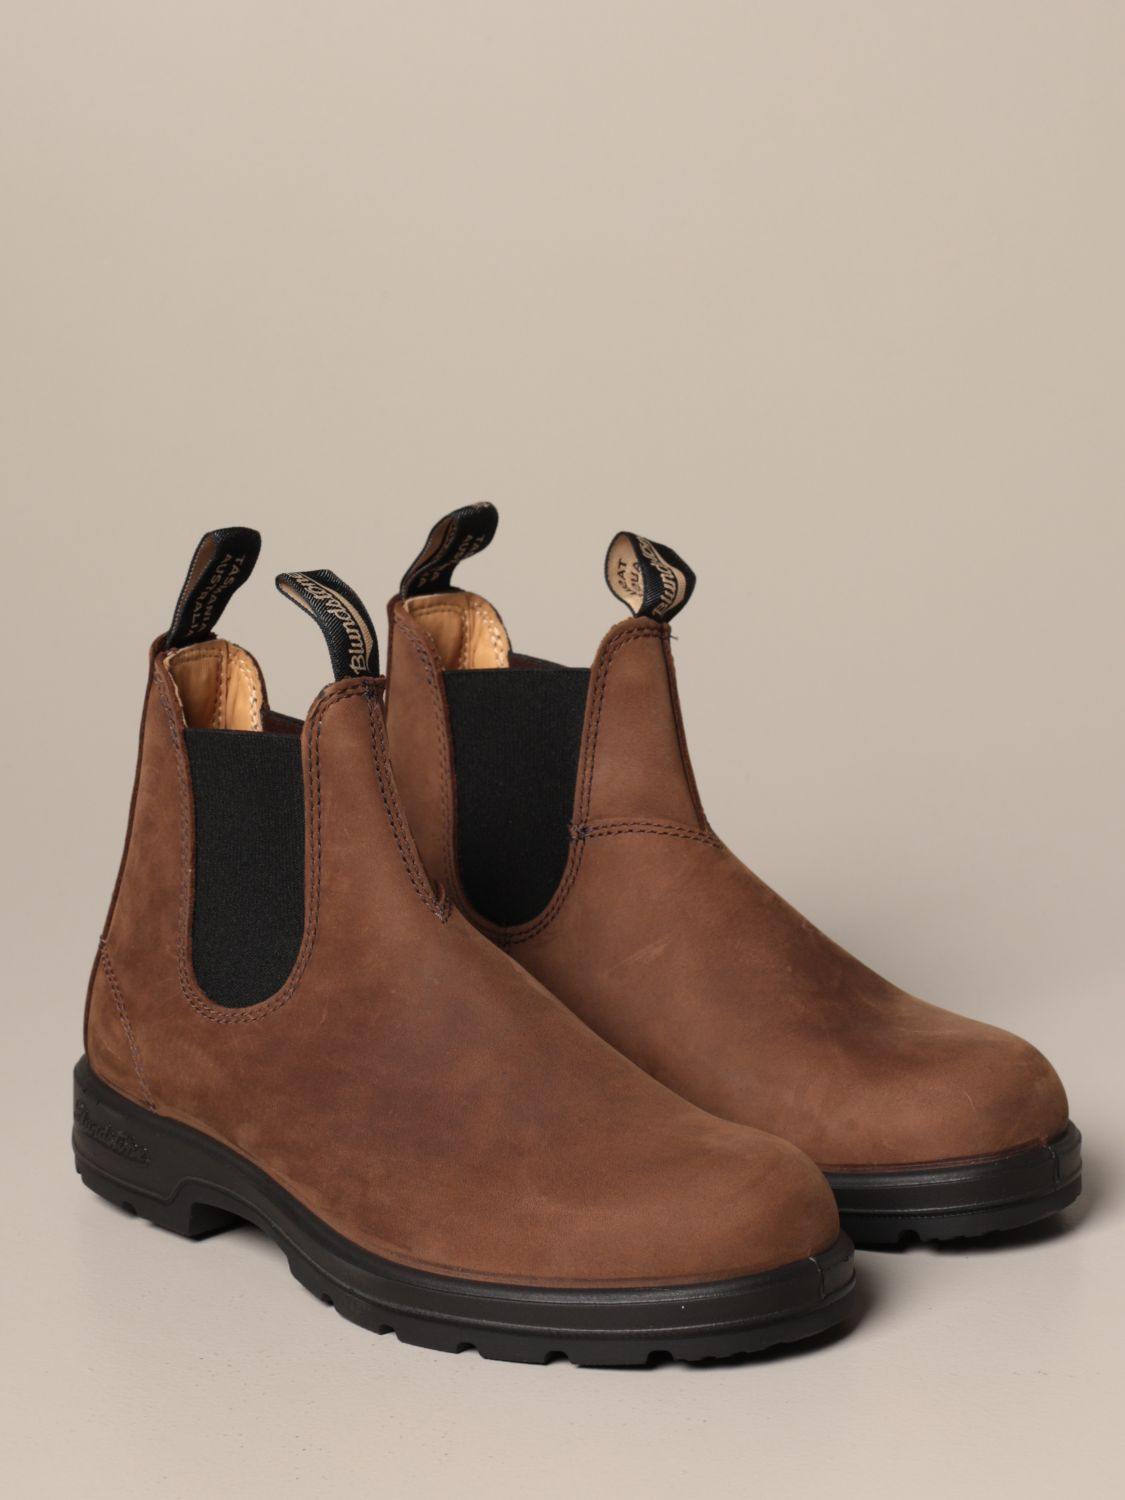 Boots Blundstone: Boots men Blundstone brown 2